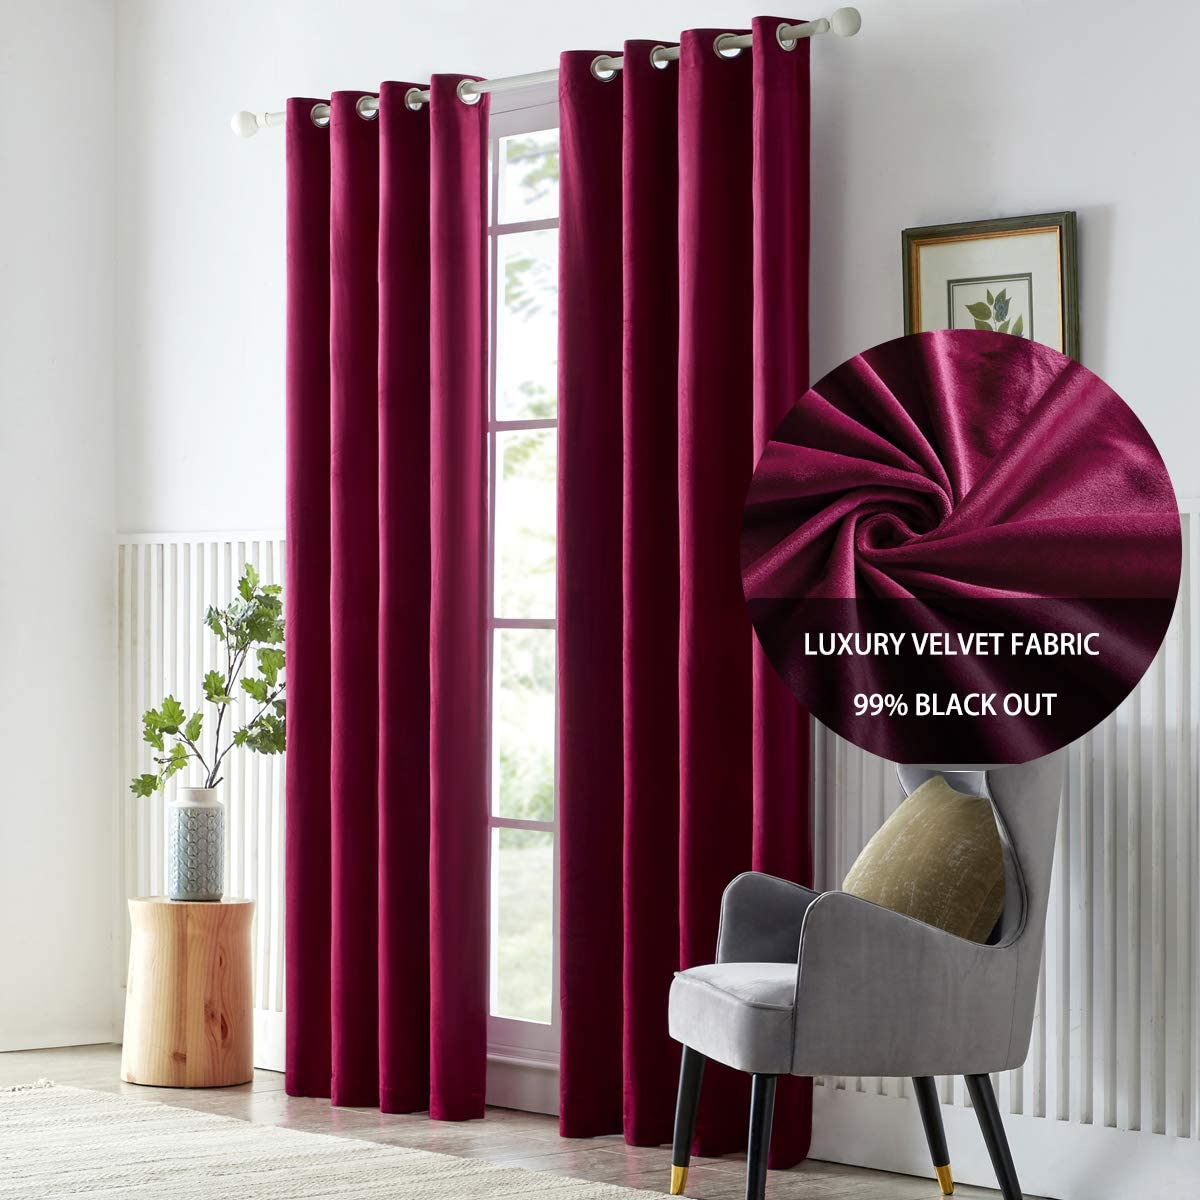 GIGIZAZA Velvet Wine Red Thermal Curtain 95 inch Long,Burgundy Black Out Darkening Curtains for Living Room Bed Room,Set of 2 Panel Light Blocking